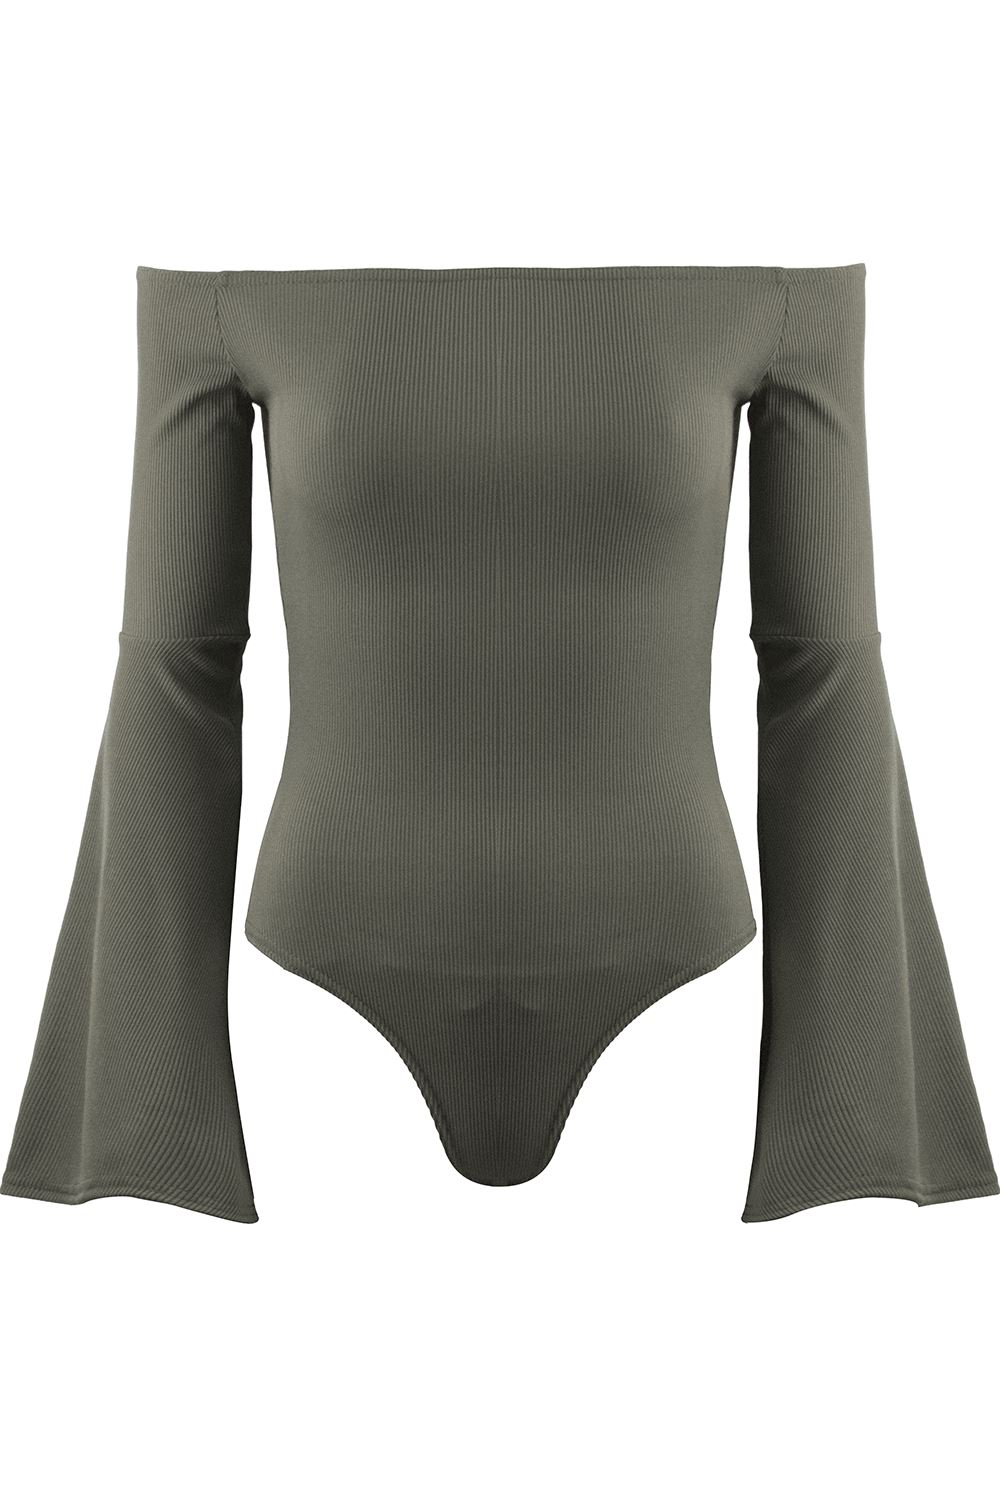 Femme Dames Rib Off épaule the épaule Off Bardot Justaucorps Body Long Bell Manche Tops af68a9